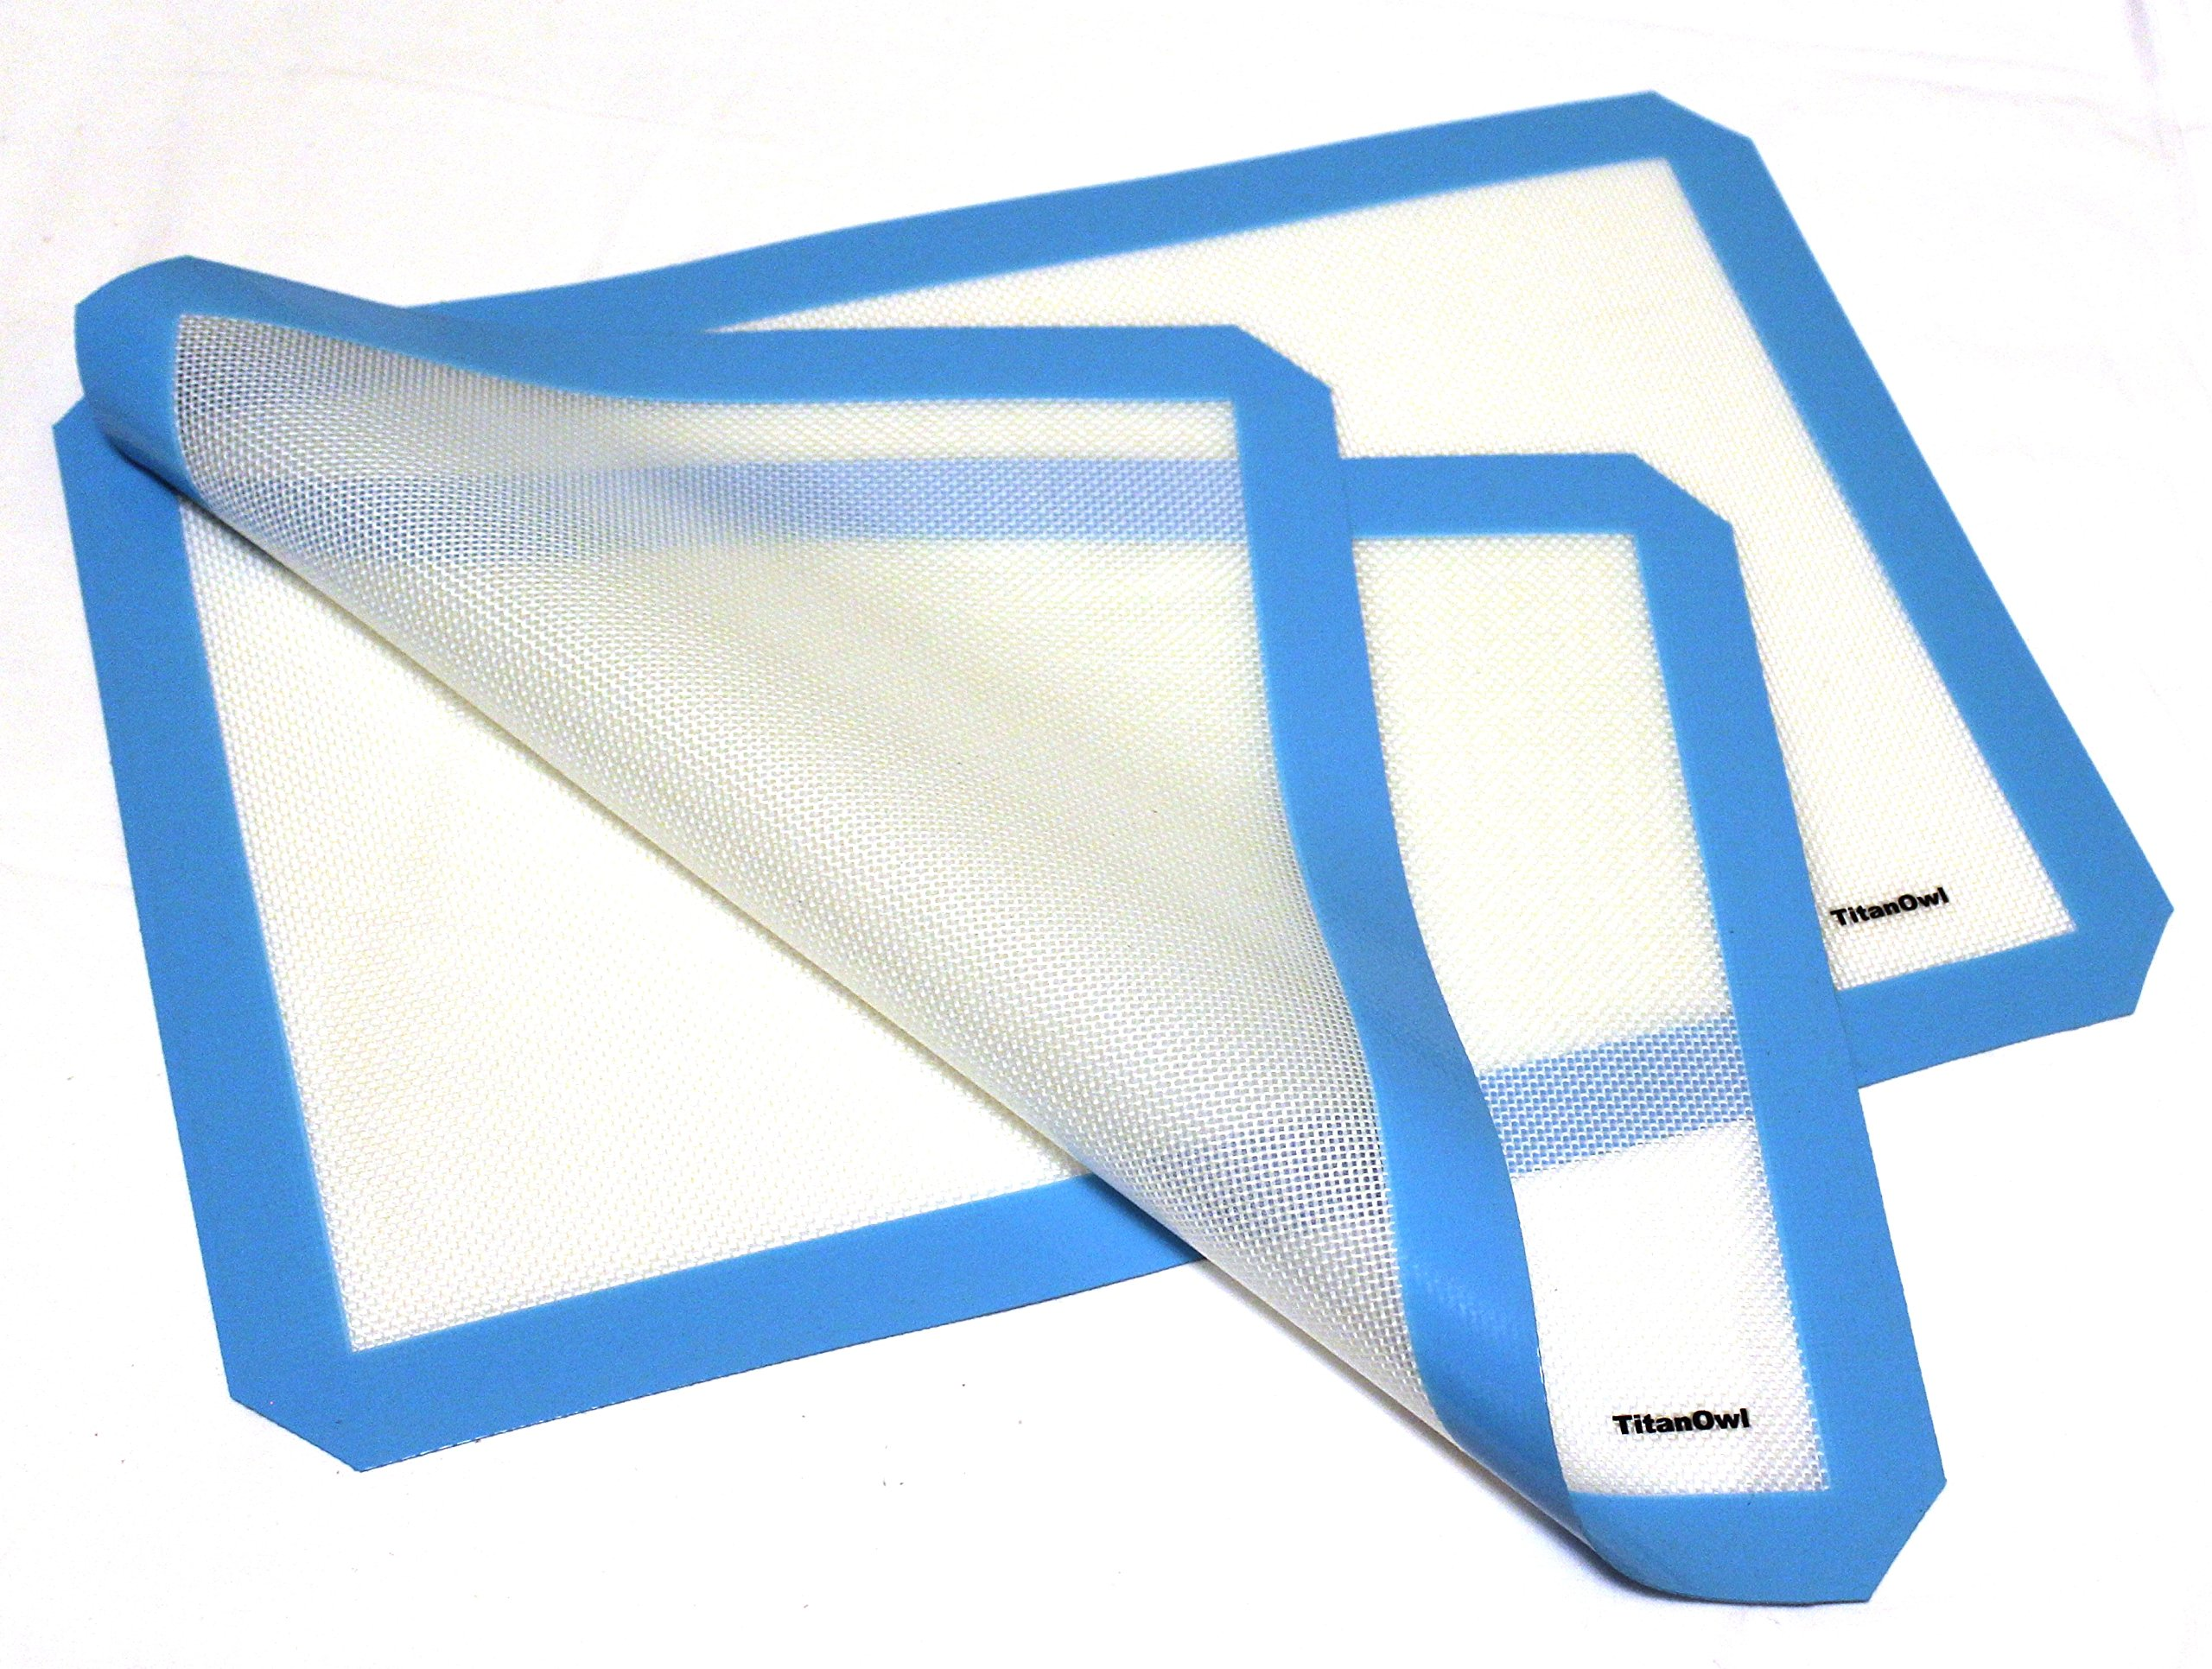 2 x Silicone Mat Platinum Cured Non-Stick Pad 16 1/2 x 11 1/2 inches by TitanOwl - Sheet with blue corners